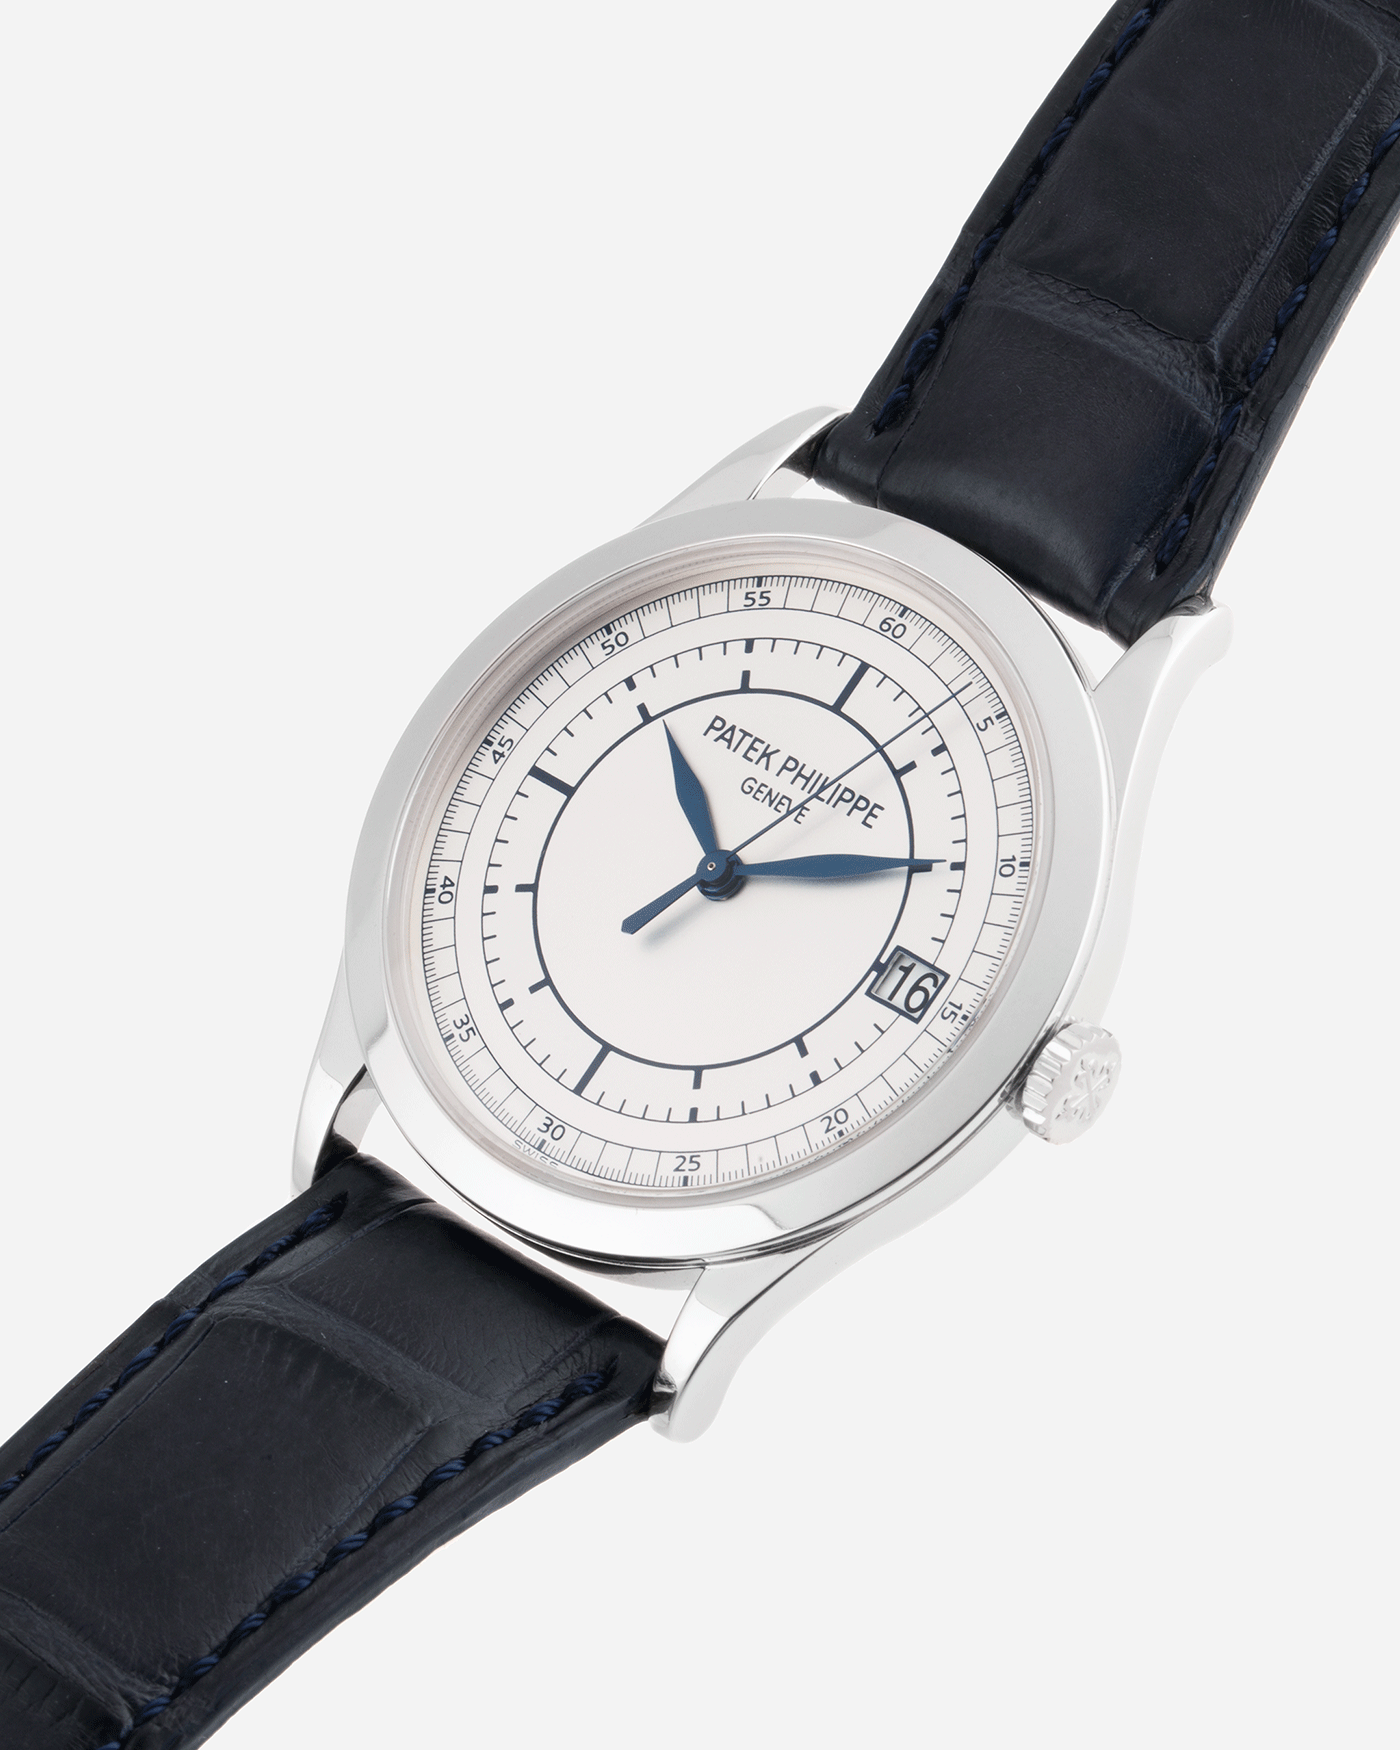 Patek Philippe Calatrava 5296G White Gold Watch | S.Song Timepieces